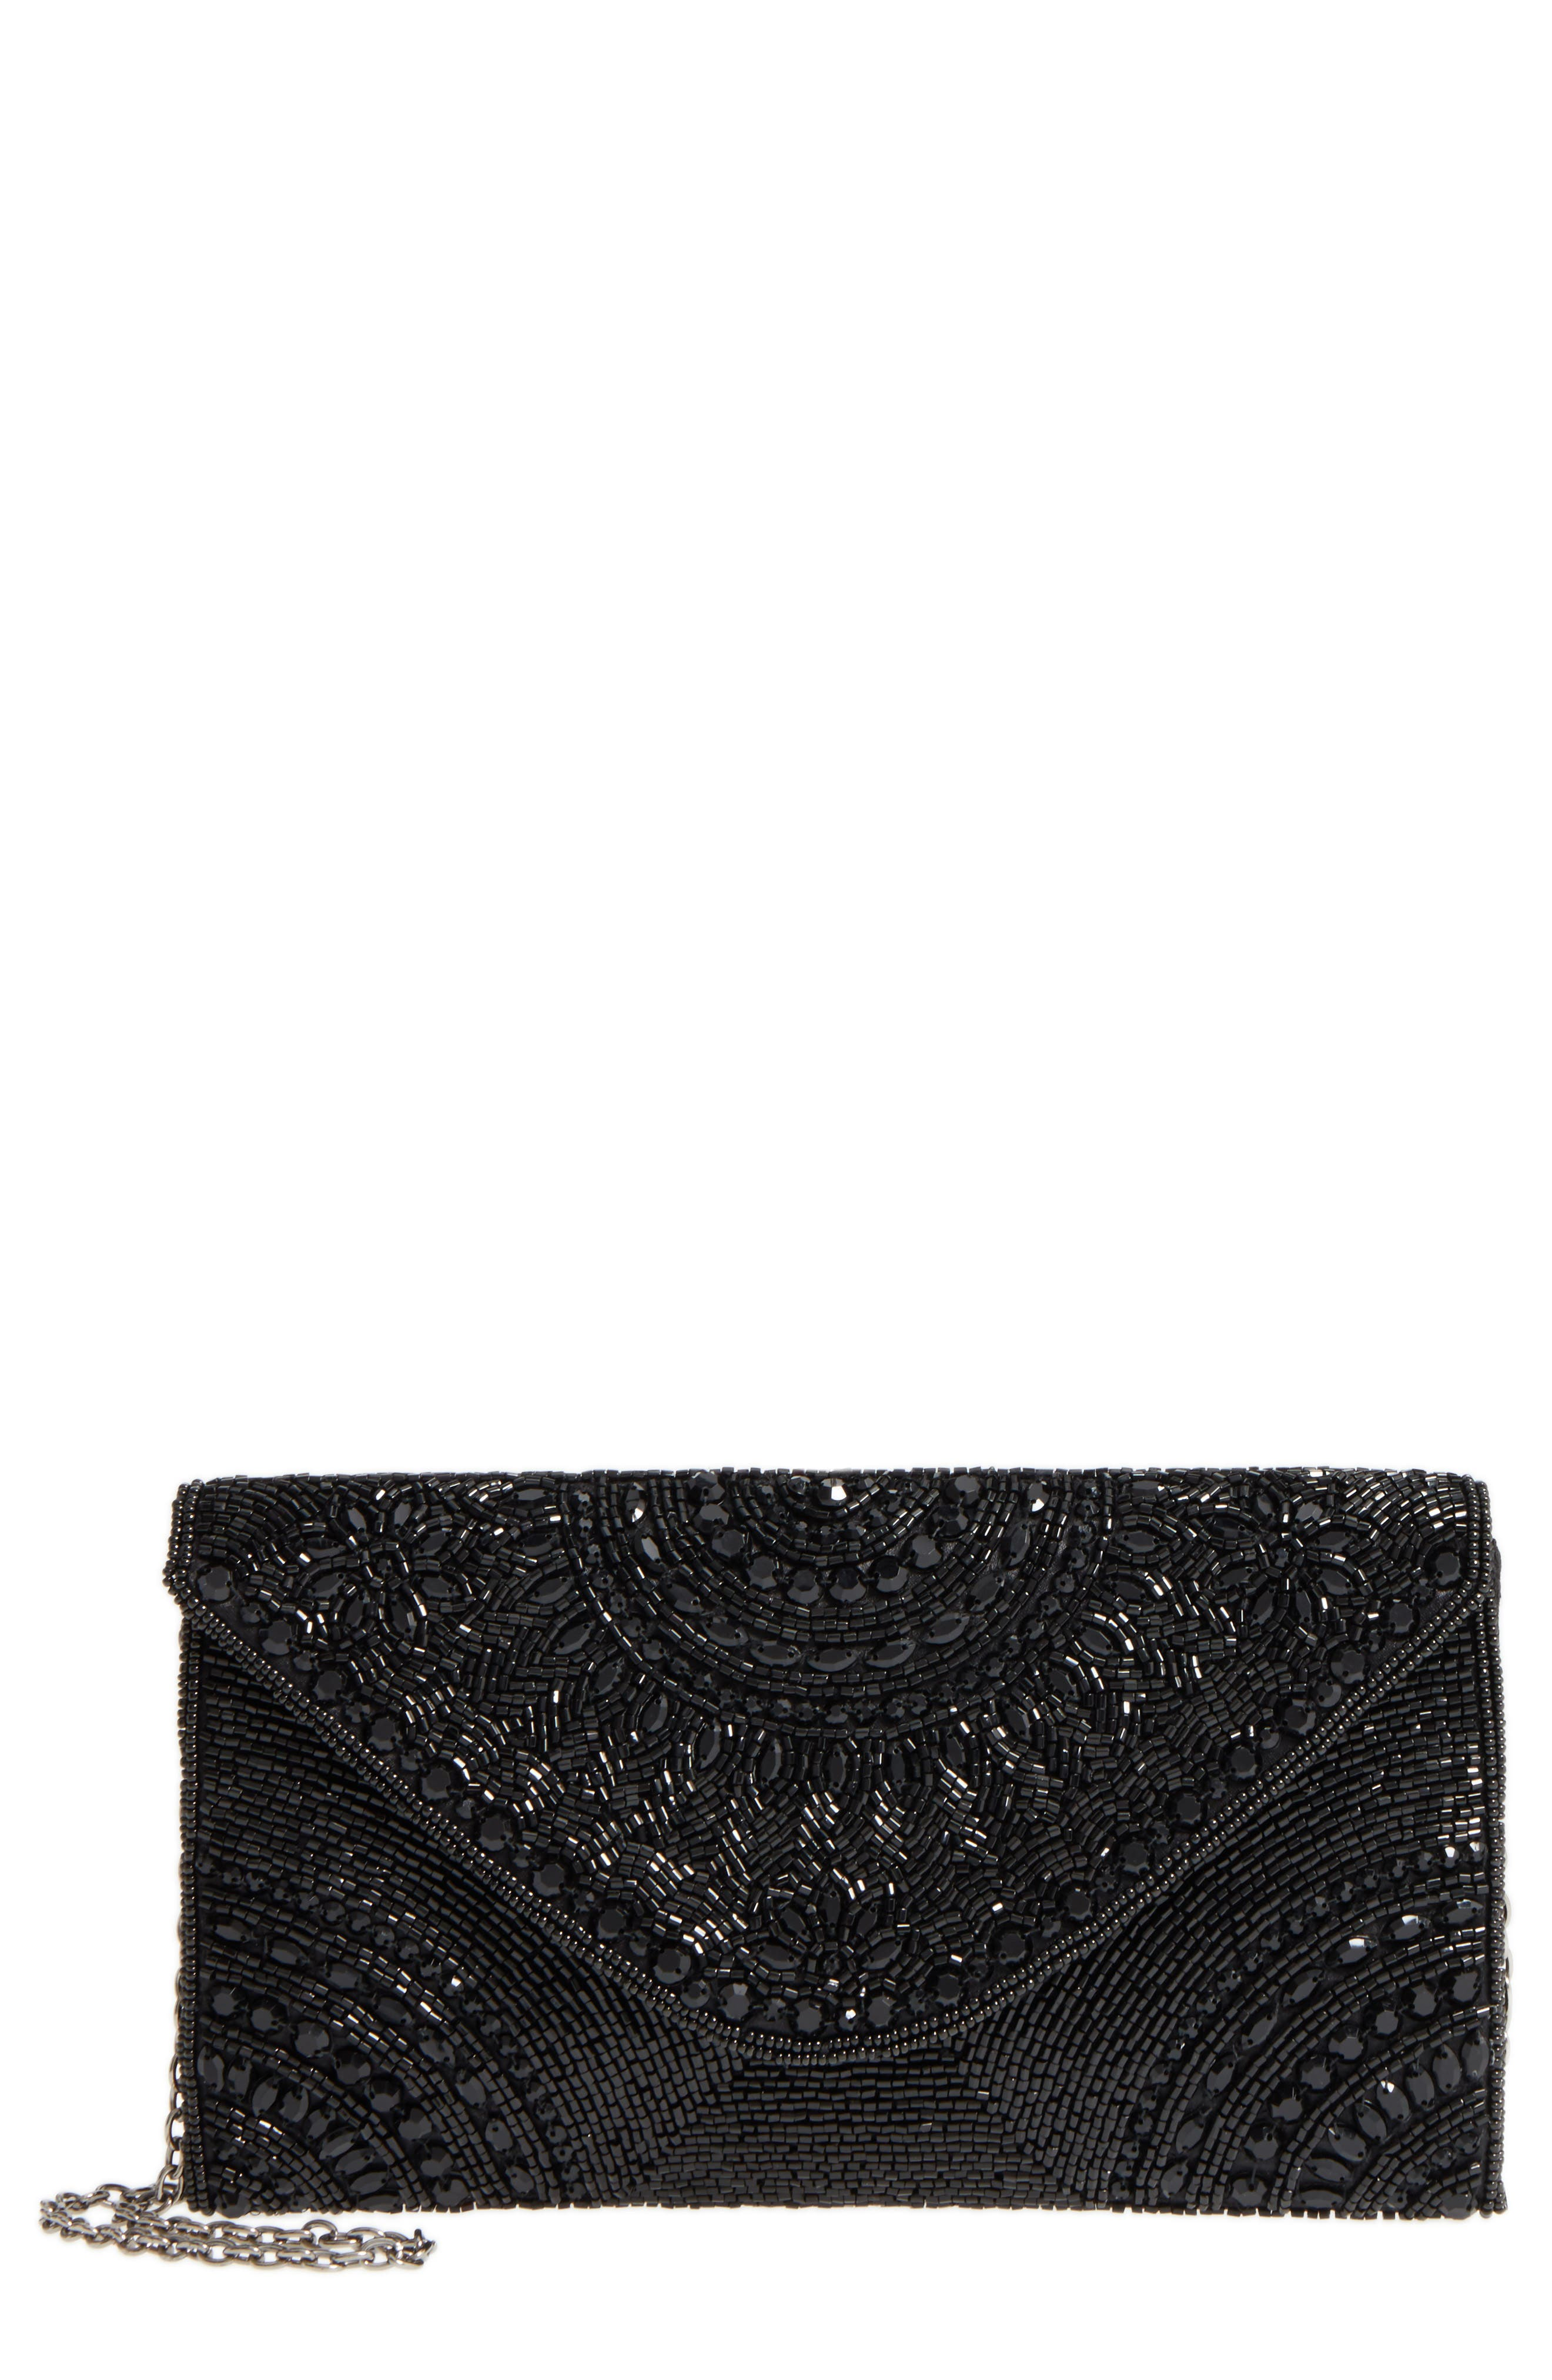 Alhambra Beaded Envelope Clutch,                             Main thumbnail 1, color,                             BLACK